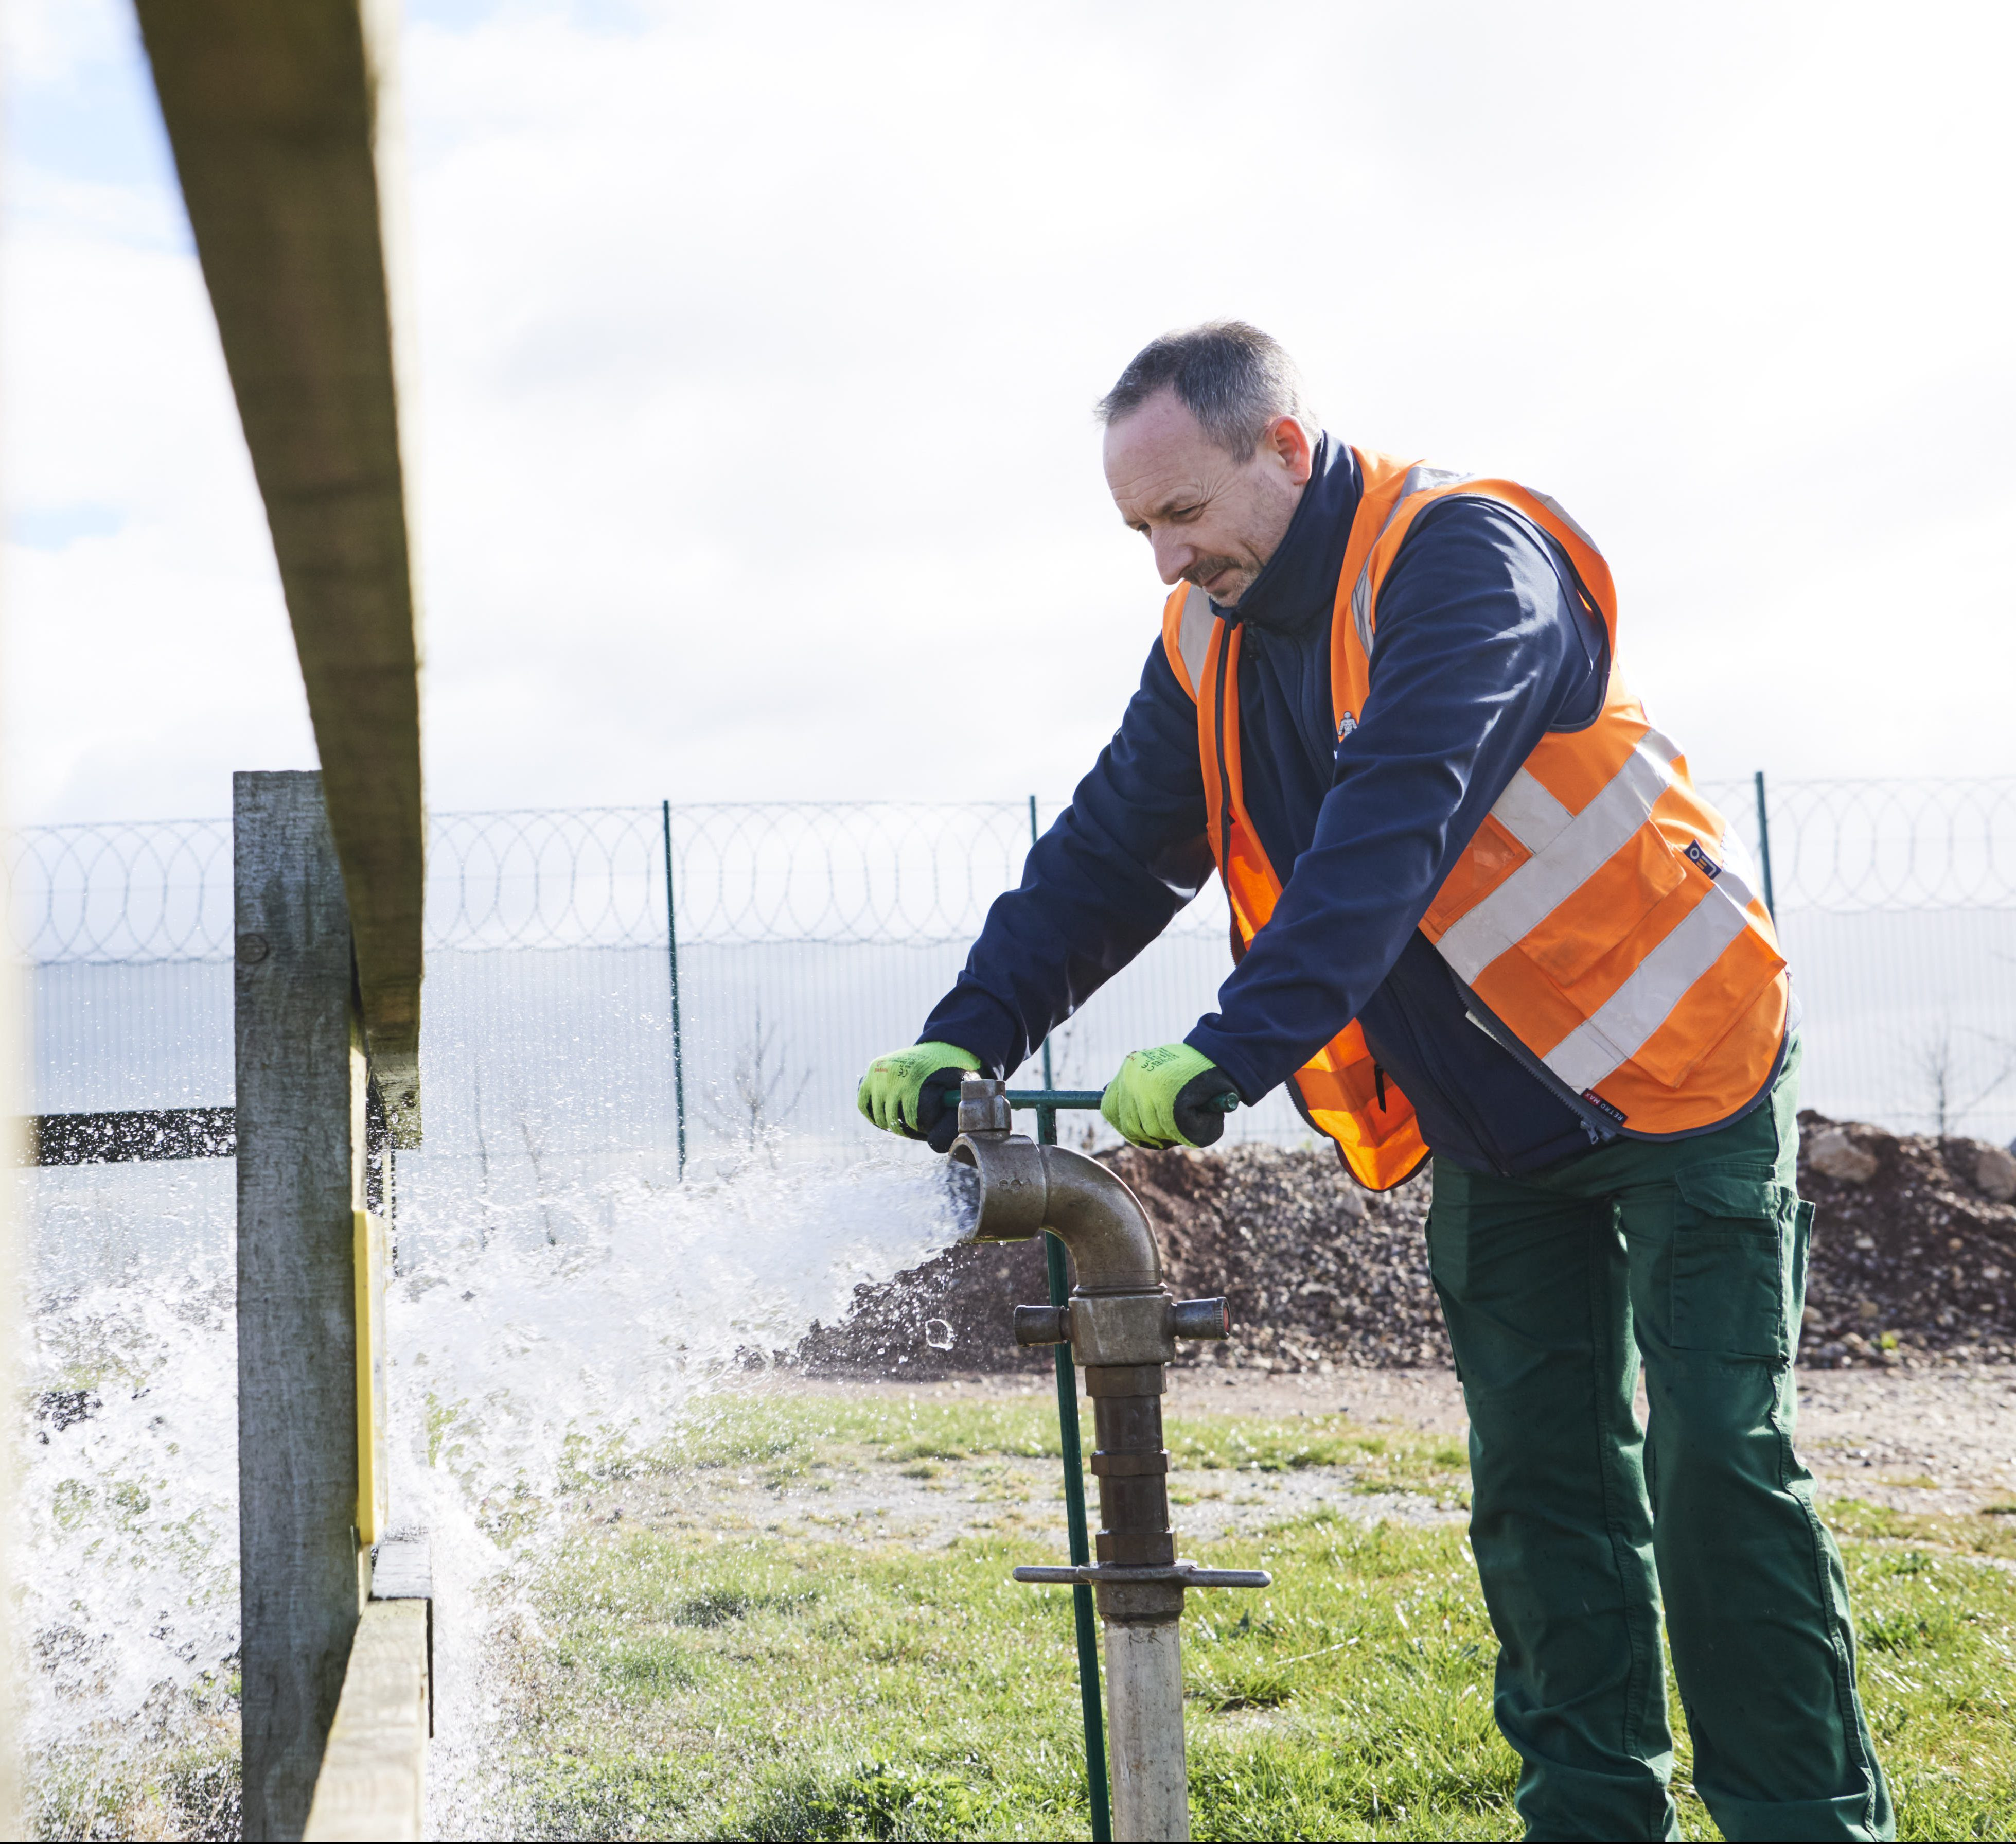 Male in high vis jacket at water treatment plant turning a water pipe